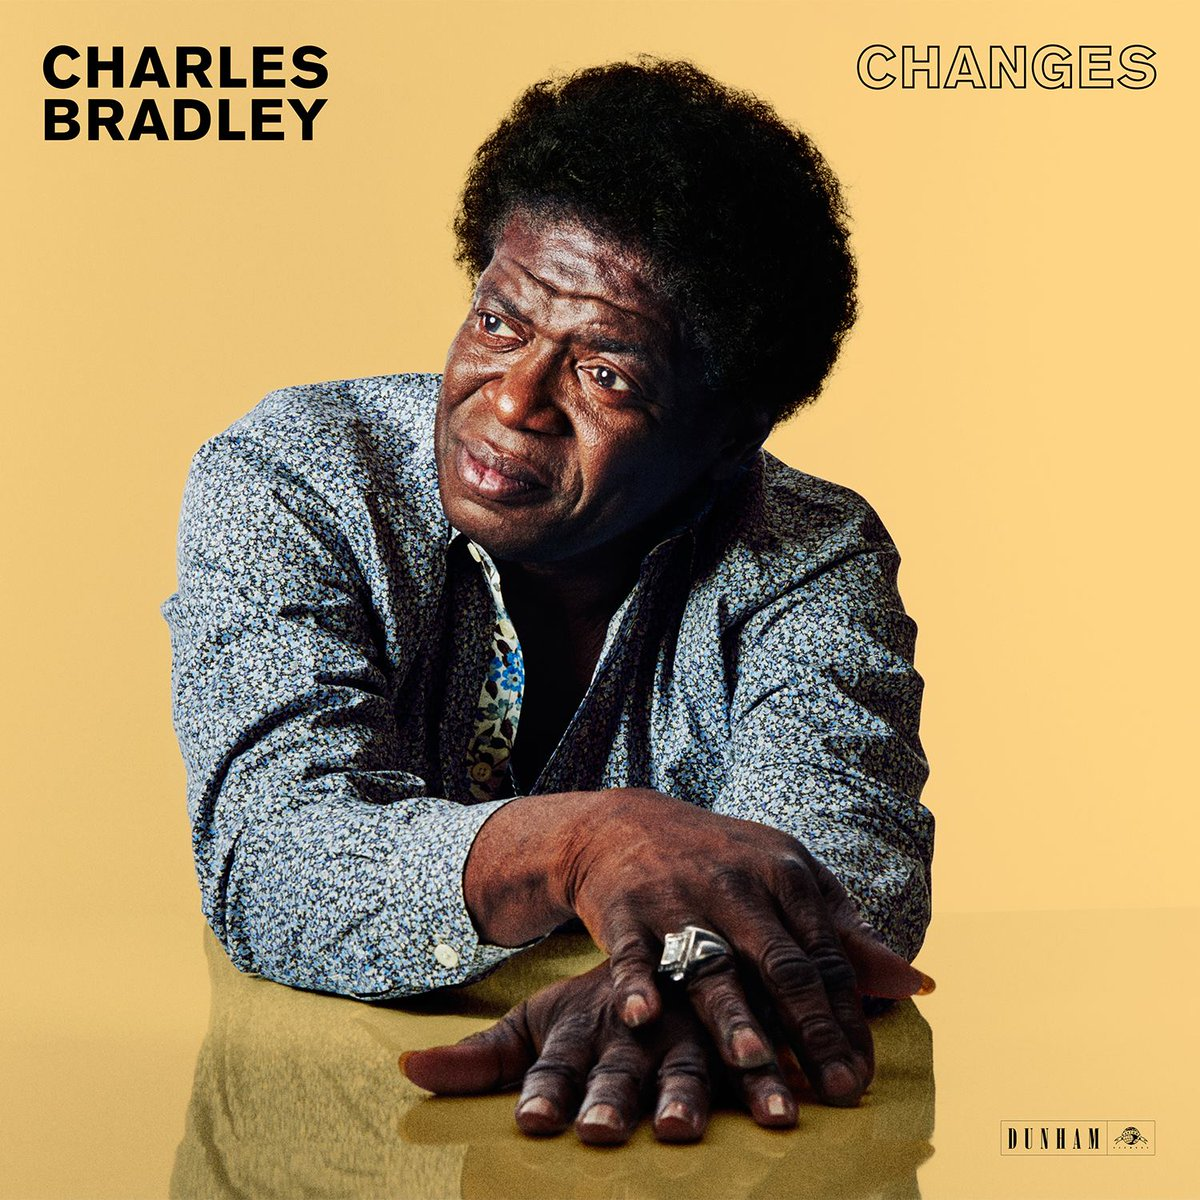 Changes is out April 1st! https://t.co/16XvA72kGI. RT to win an autographed test pressing #charlesforchange https://t.co/HuCs2V0eQm